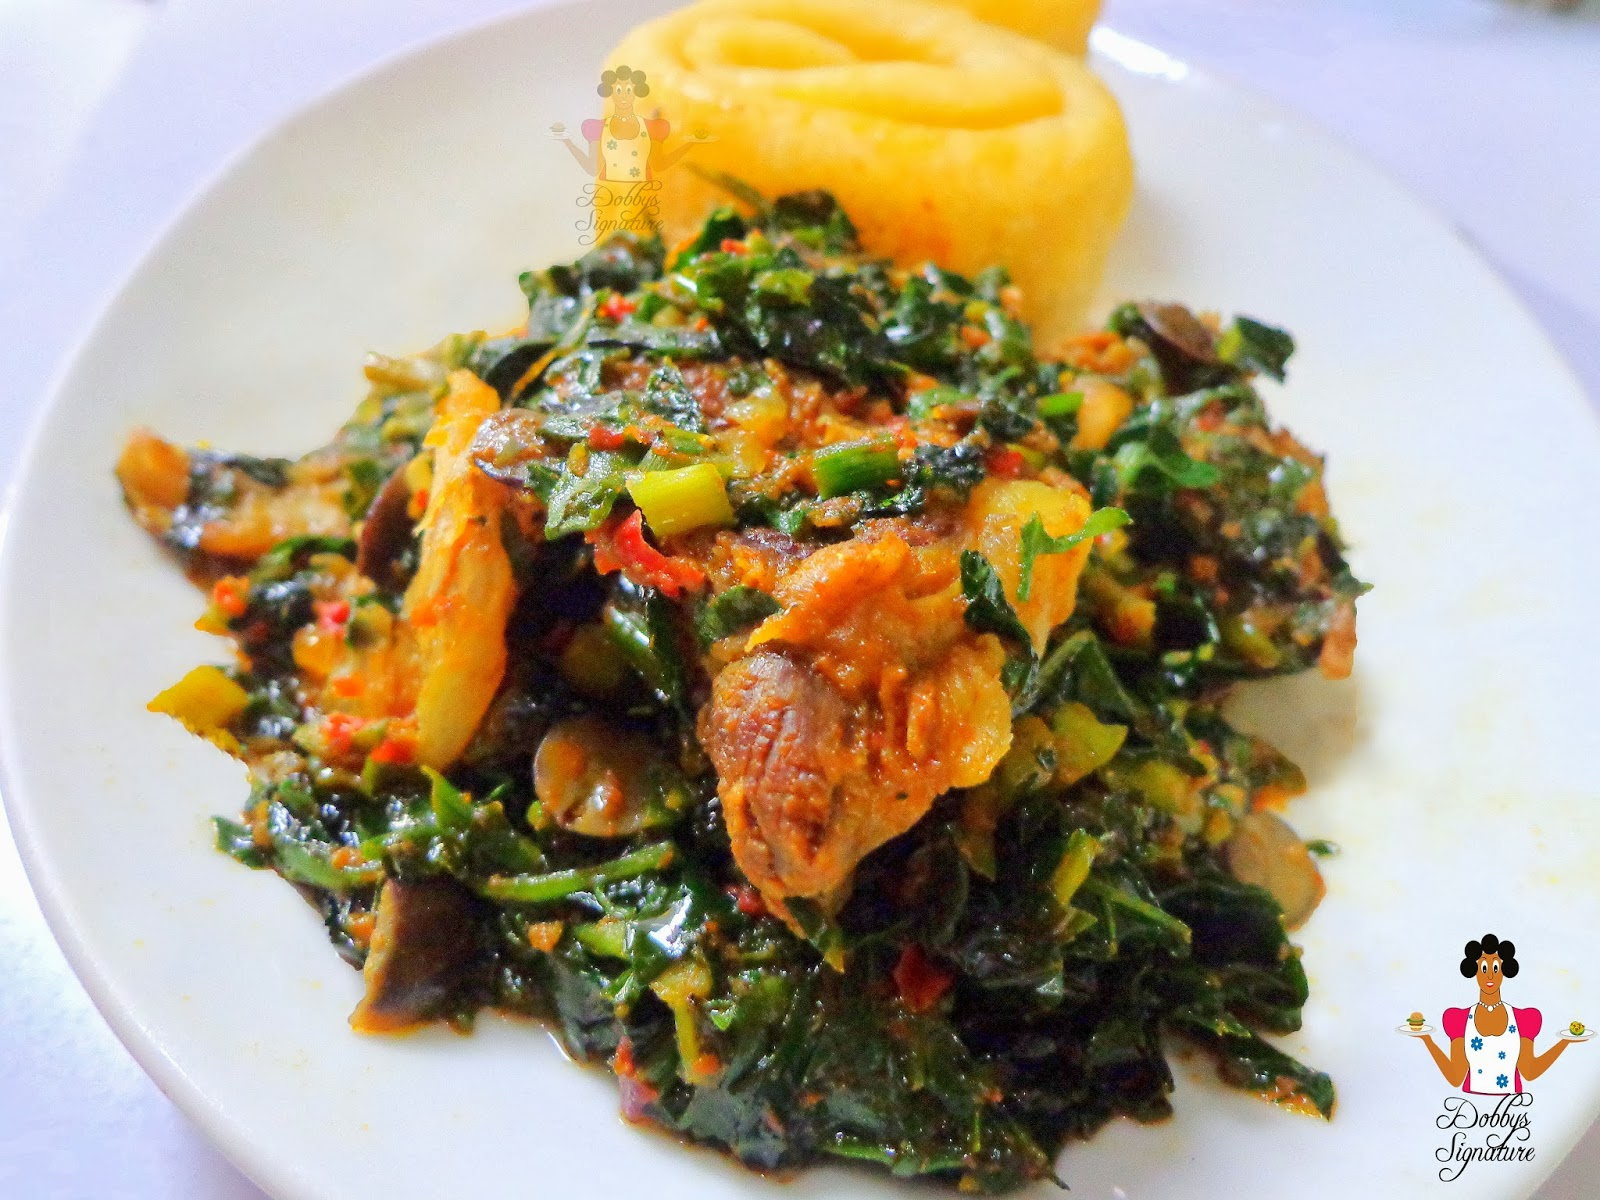 Dobbys signature nigerian food blog i nigerian food recipes i vegetable soup efo riro recipe forumfinder Choice Image